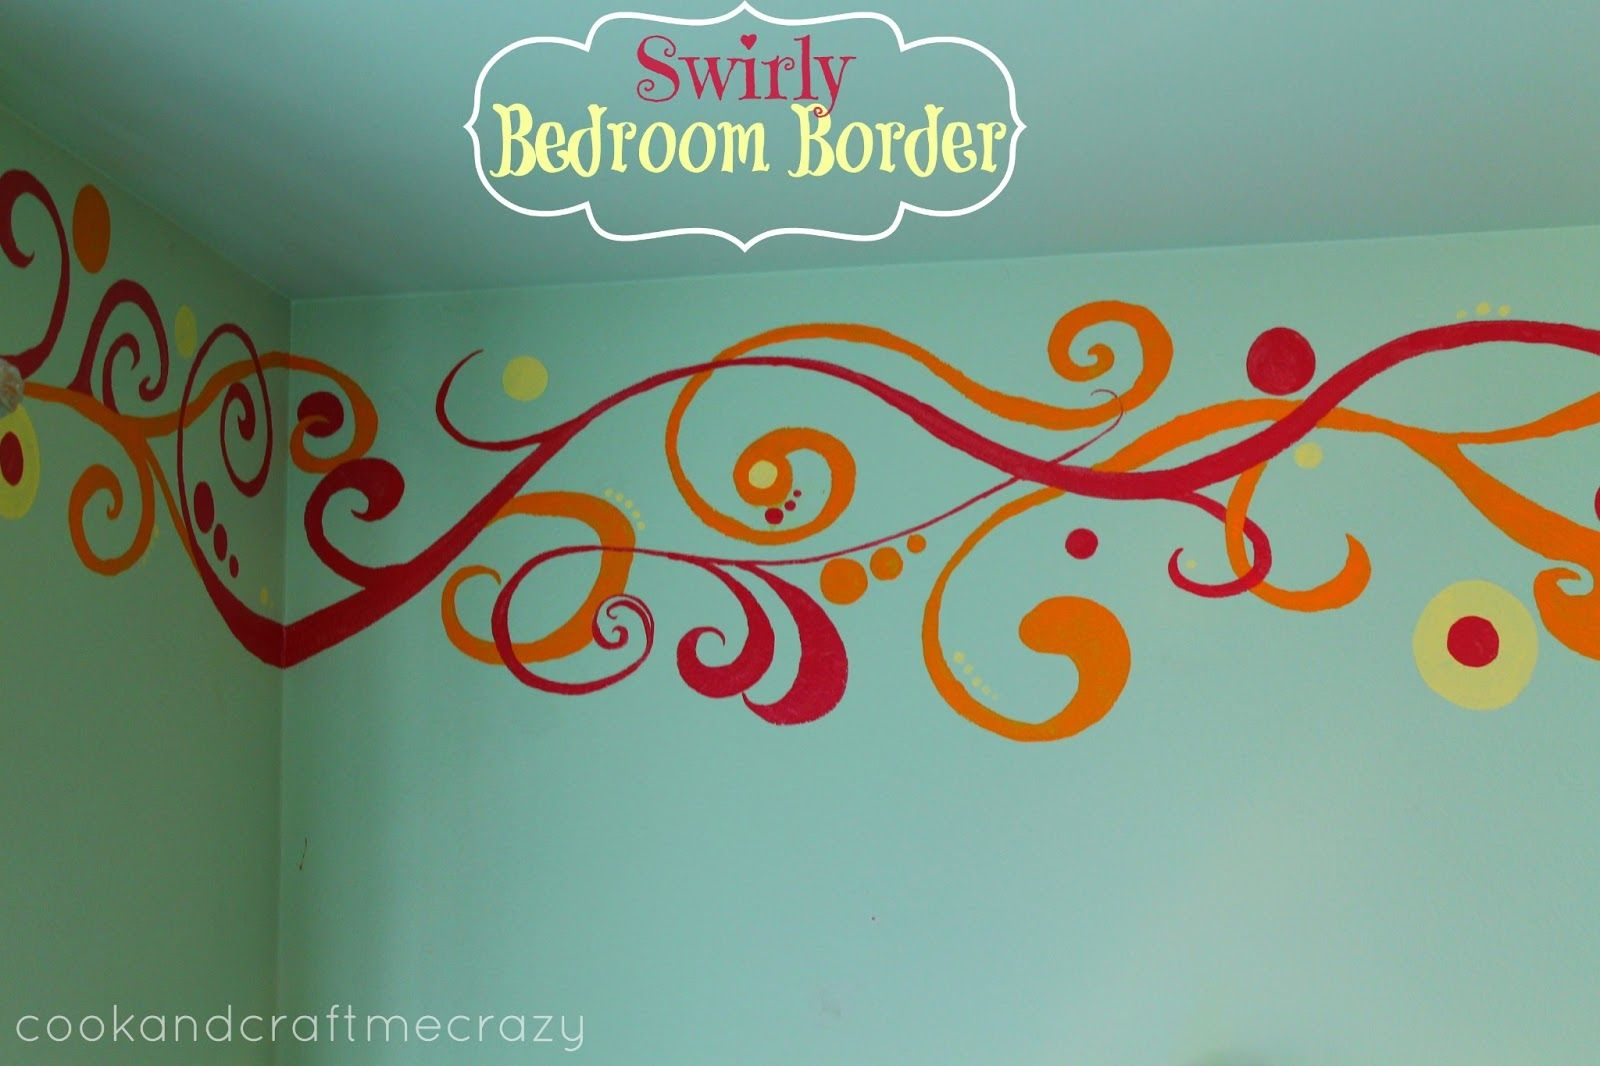 Cook And Craft Crazy Hand Sketched Painted Swirly